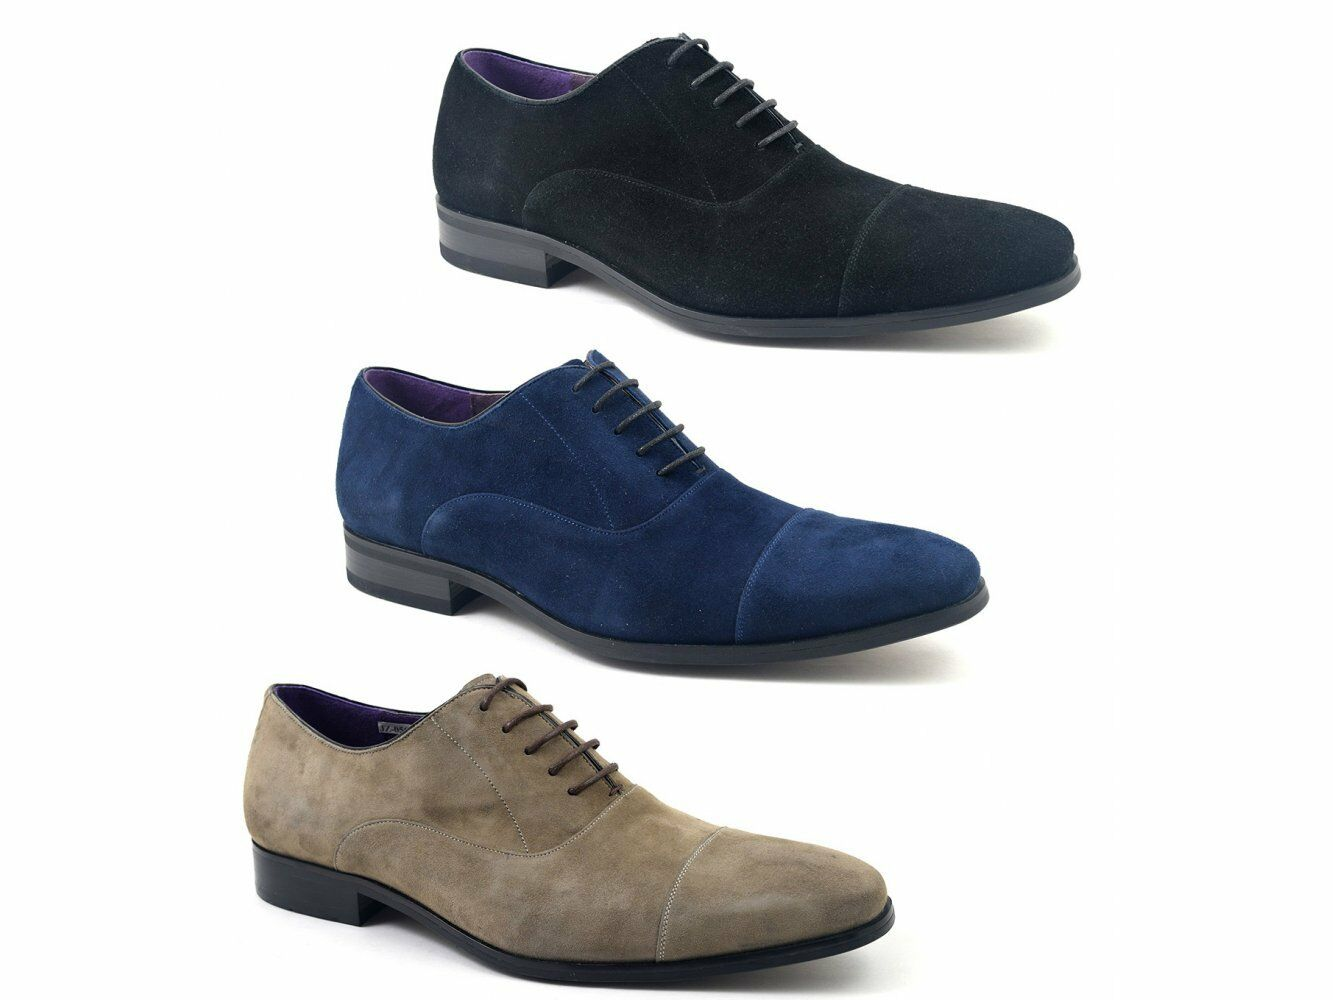 Gucinari Gucinari Gucinari PETRUS   Herren Suede Leder Formal Evening Lace-Up Cap Toe Oxford Schuhes 770bac